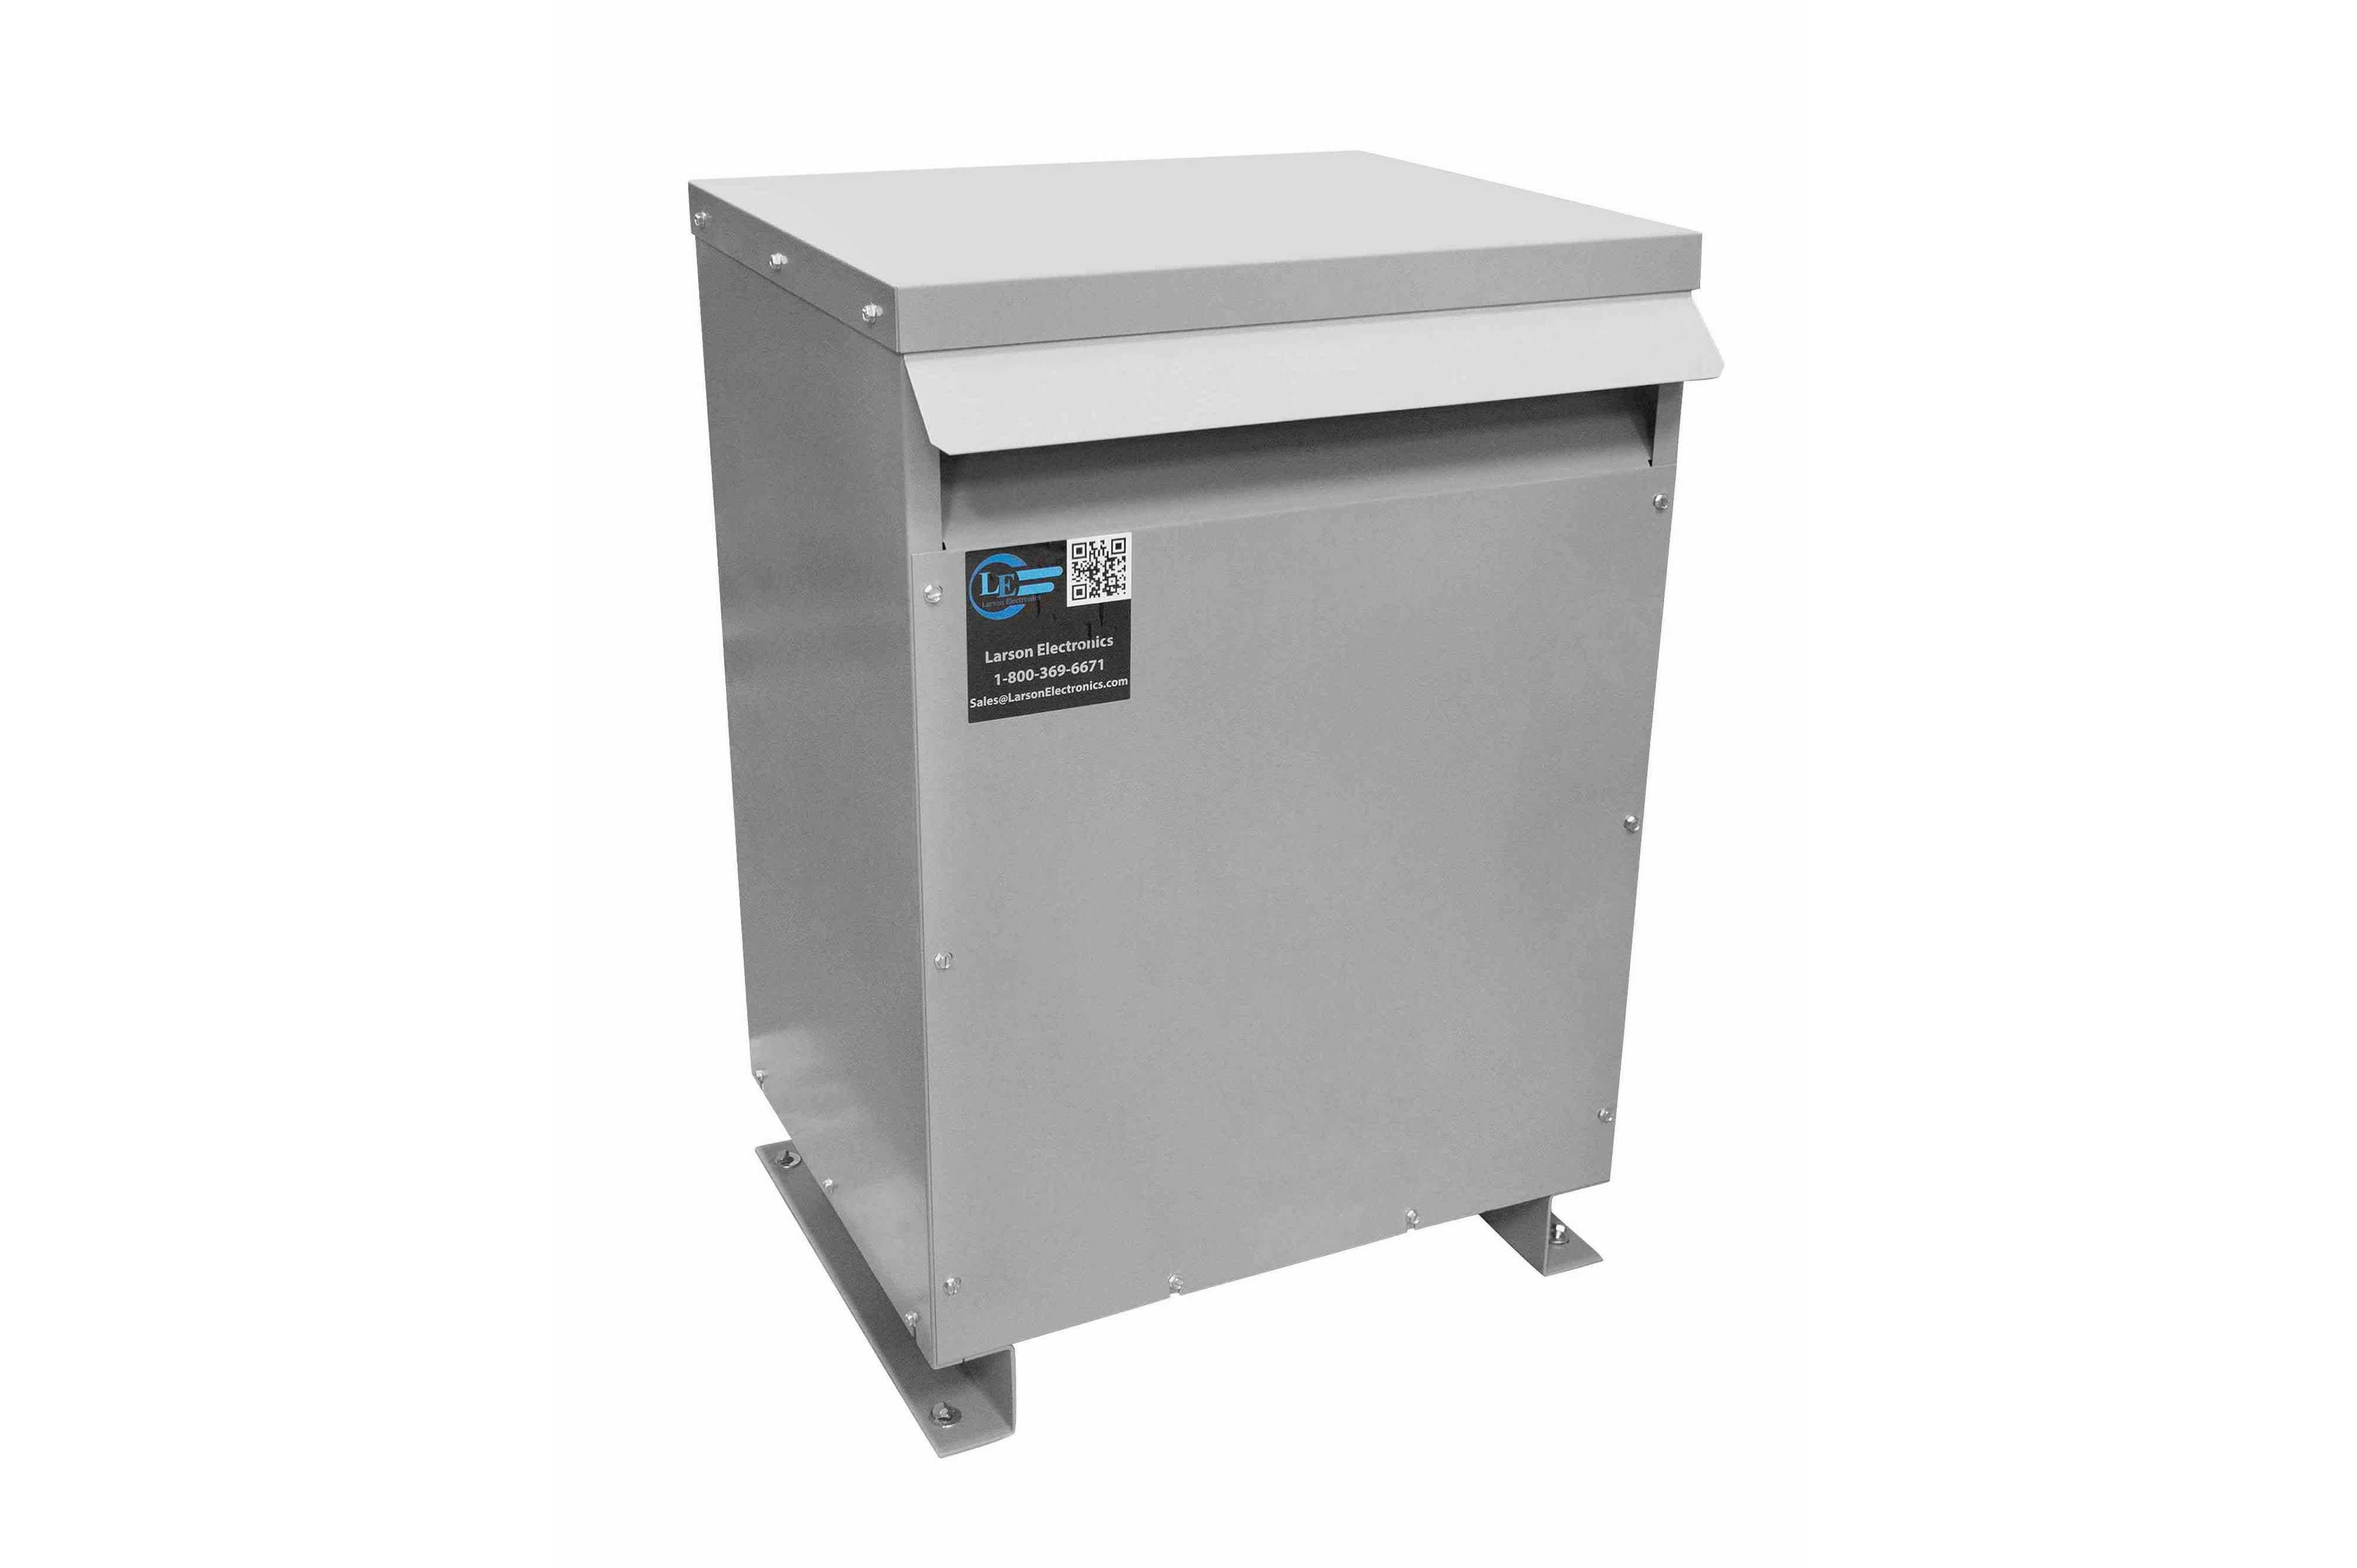 14 kVA 3PH Isolation Transformer, 575V Wye Primary, 400Y/231 Wye-N Secondary, N3R, Ventilated, 60 Hz